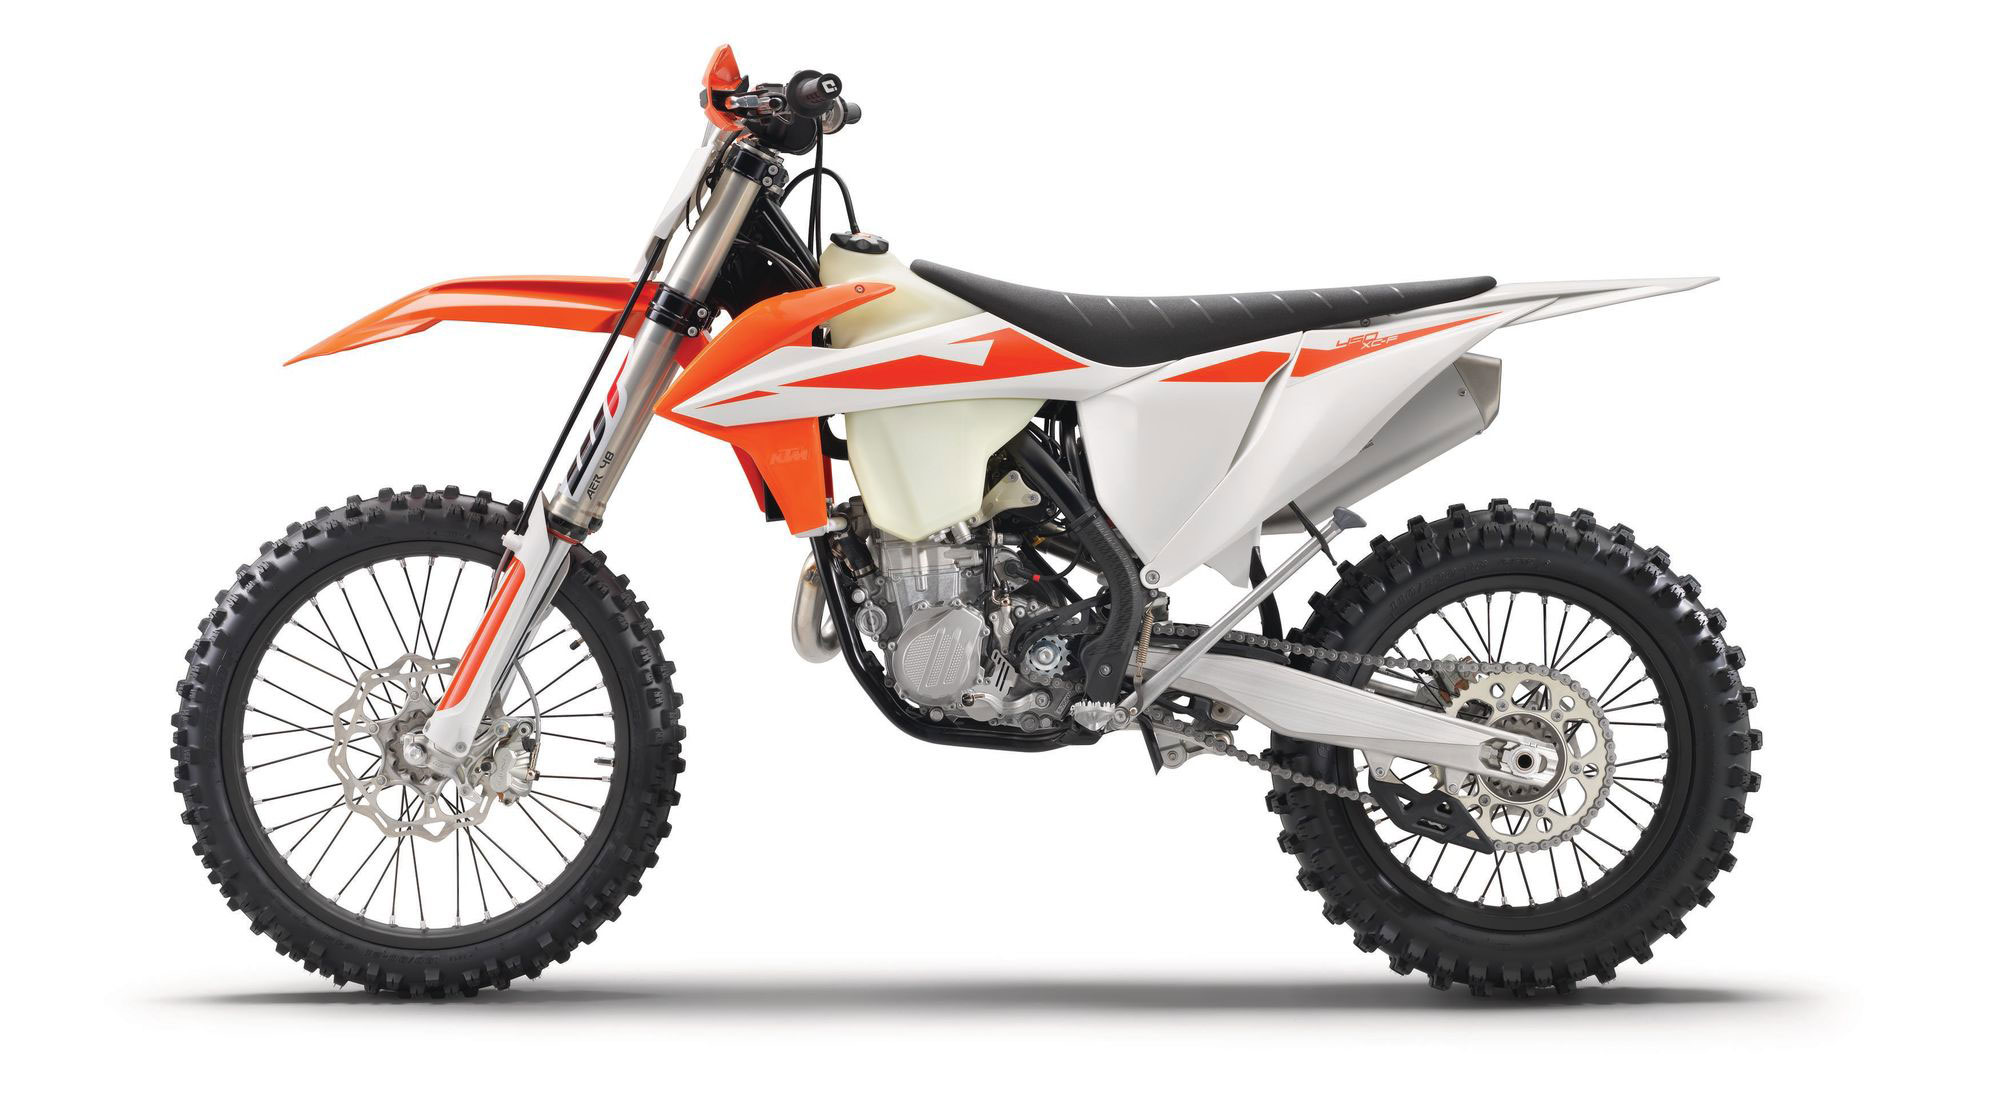 2019 KTM 450 XC-F Guide • Total Motorcycle